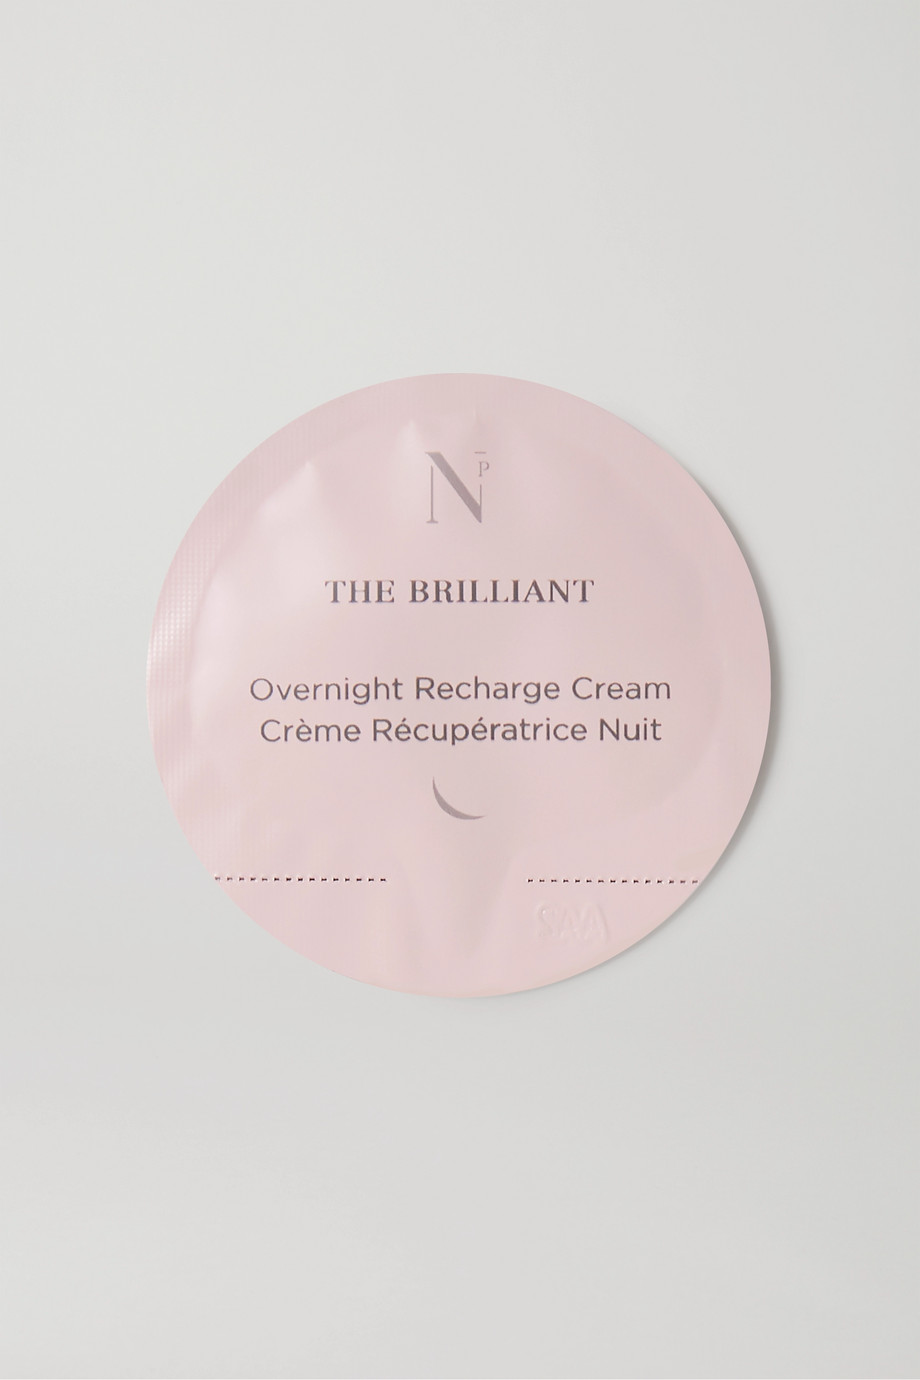 Noble Panacea The Brilliant Overnight Recharge Cream, 30 x 0.8ml